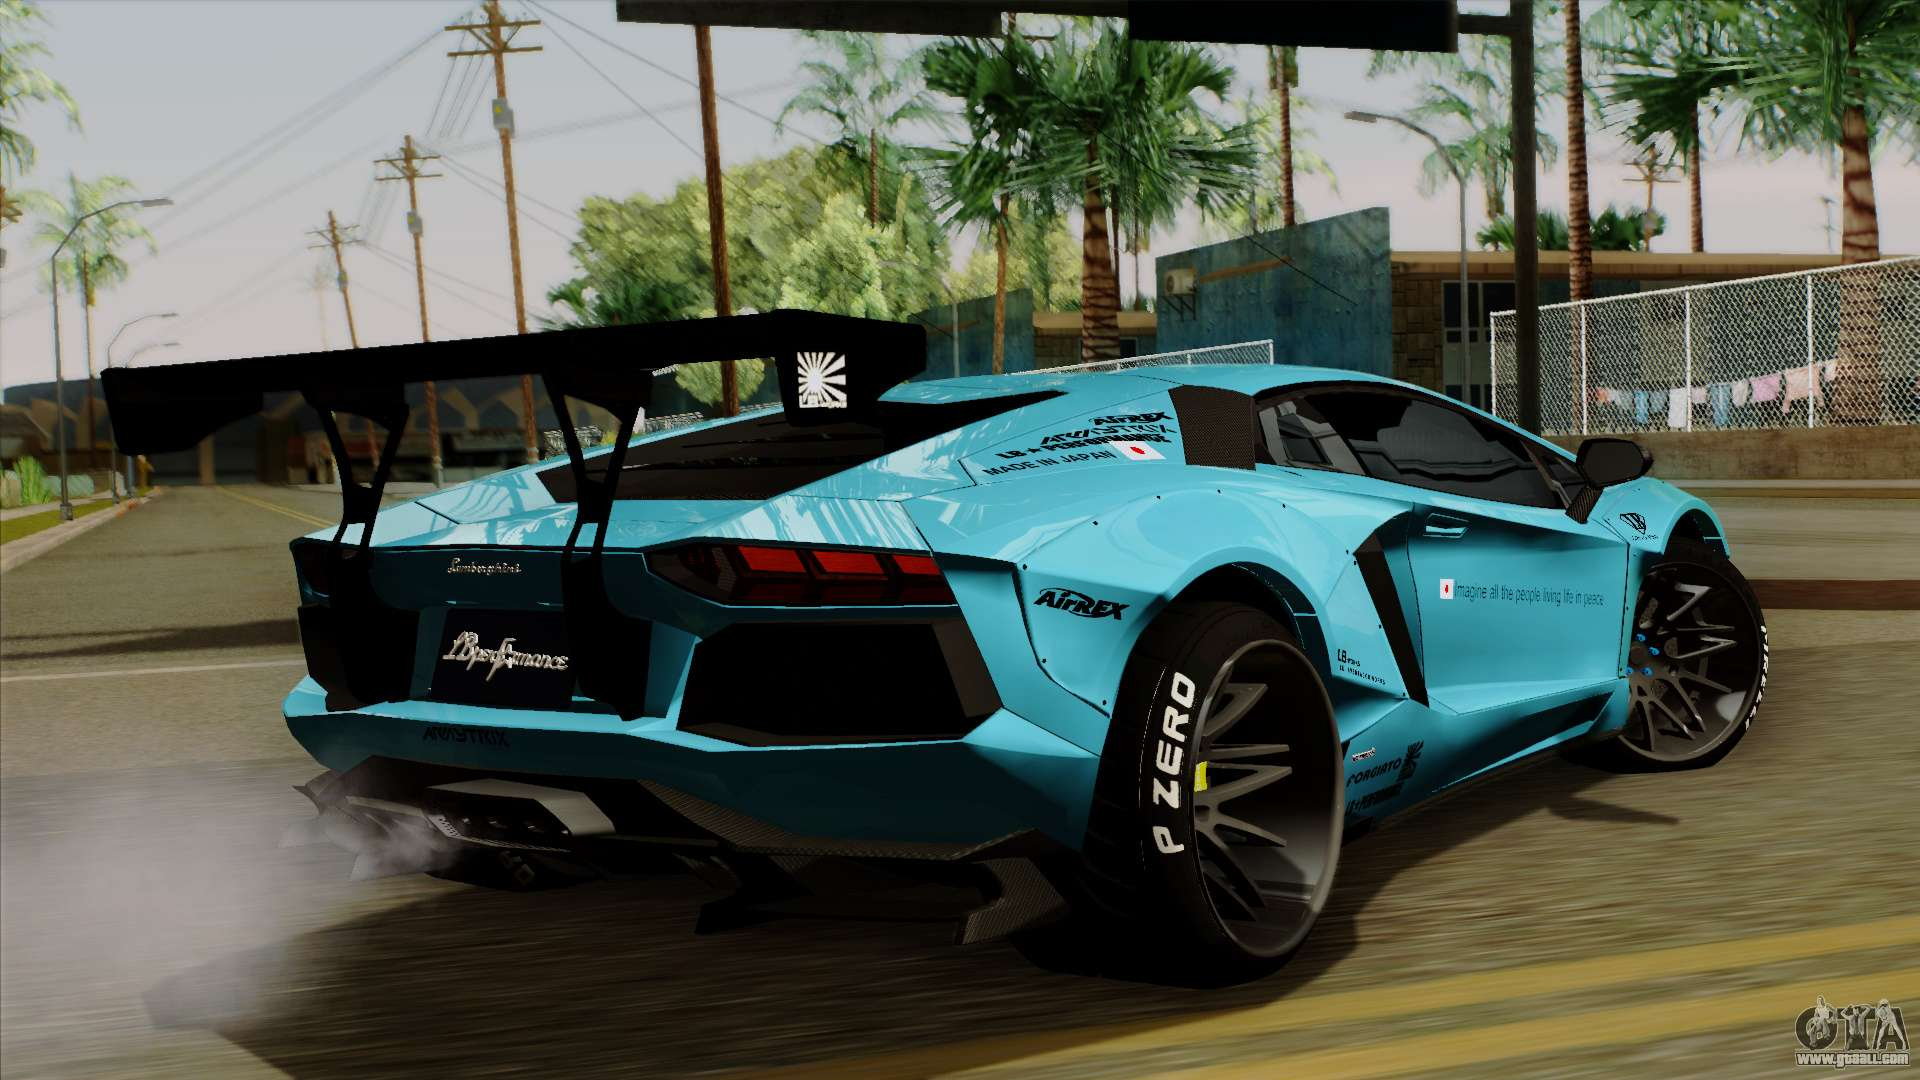 Lamborghini Aventador Lb Performance For Gta San Andreas HD Wallpapers Download free images and photos [musssic.tk]